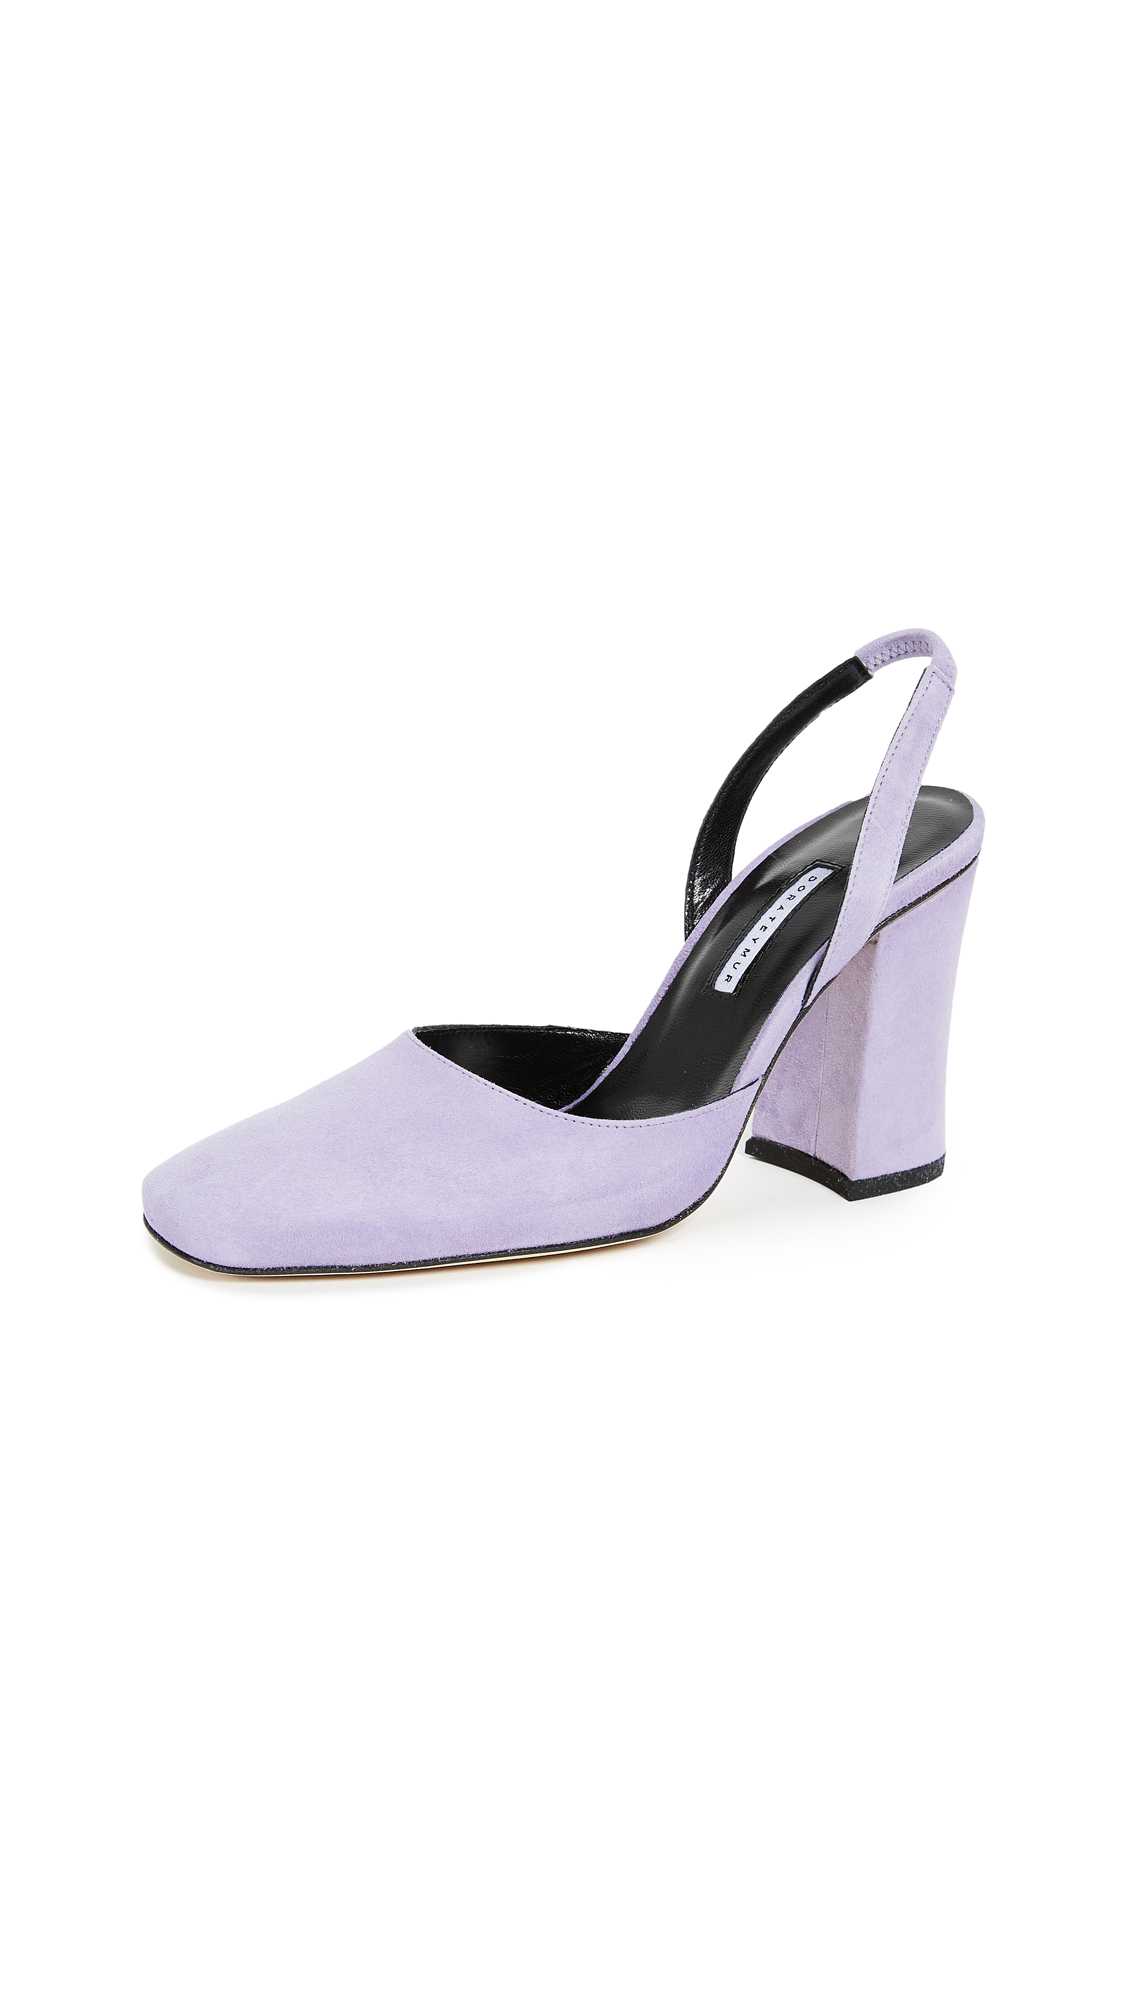 Dorateymur Resort Sling Pumps - Lilac